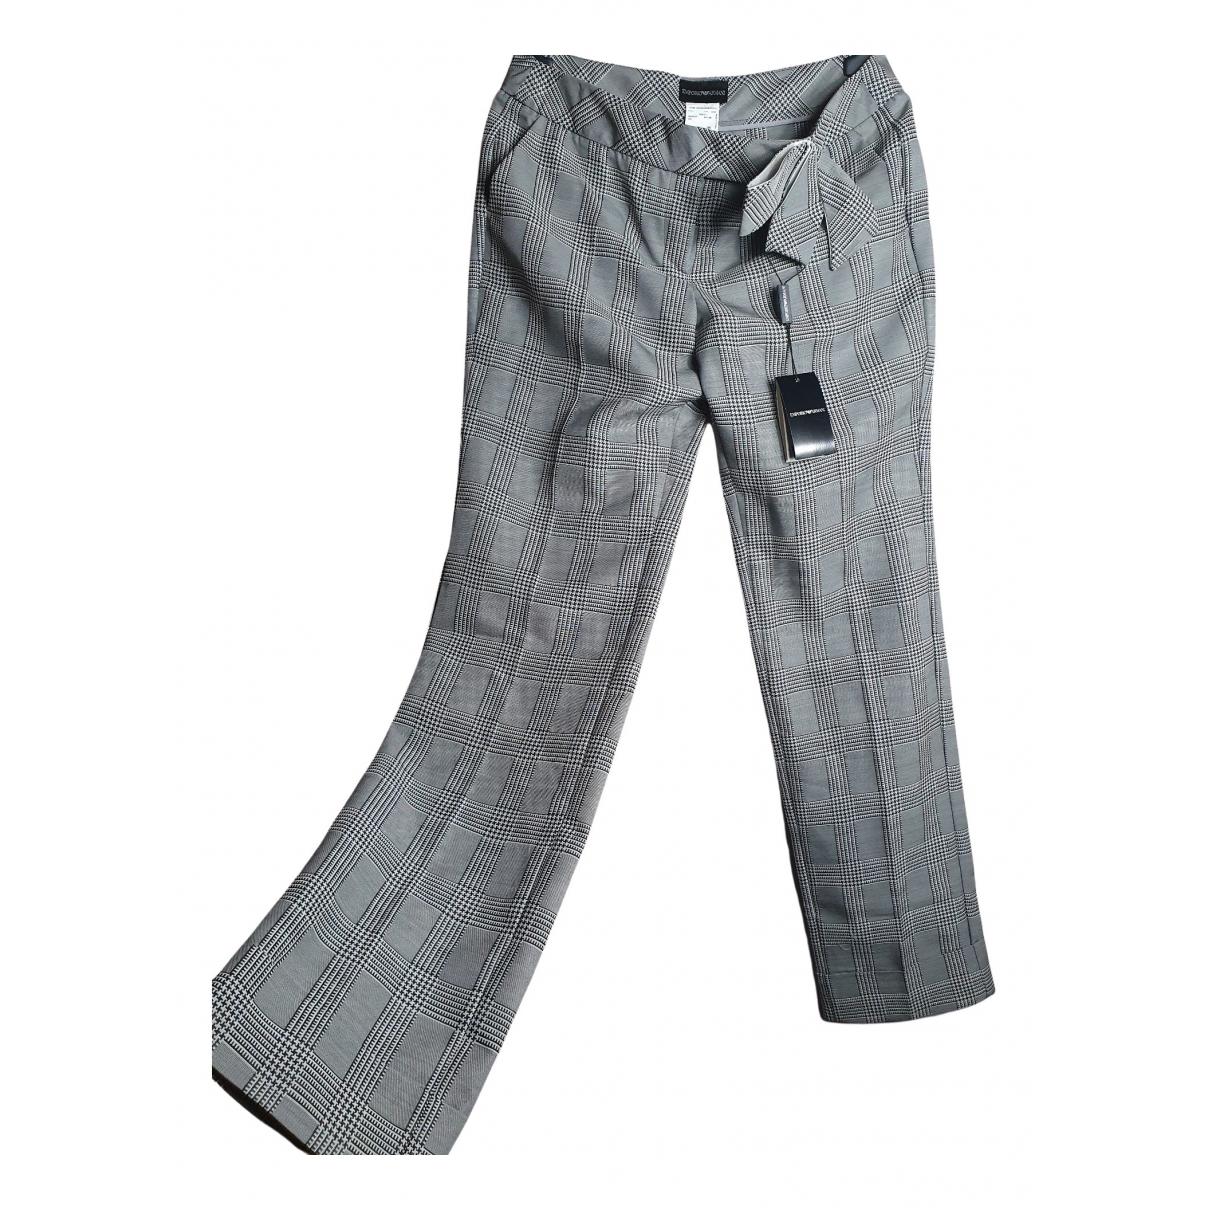 Emporio Armani N Multicolour Wool Trousers for Women 46 IT